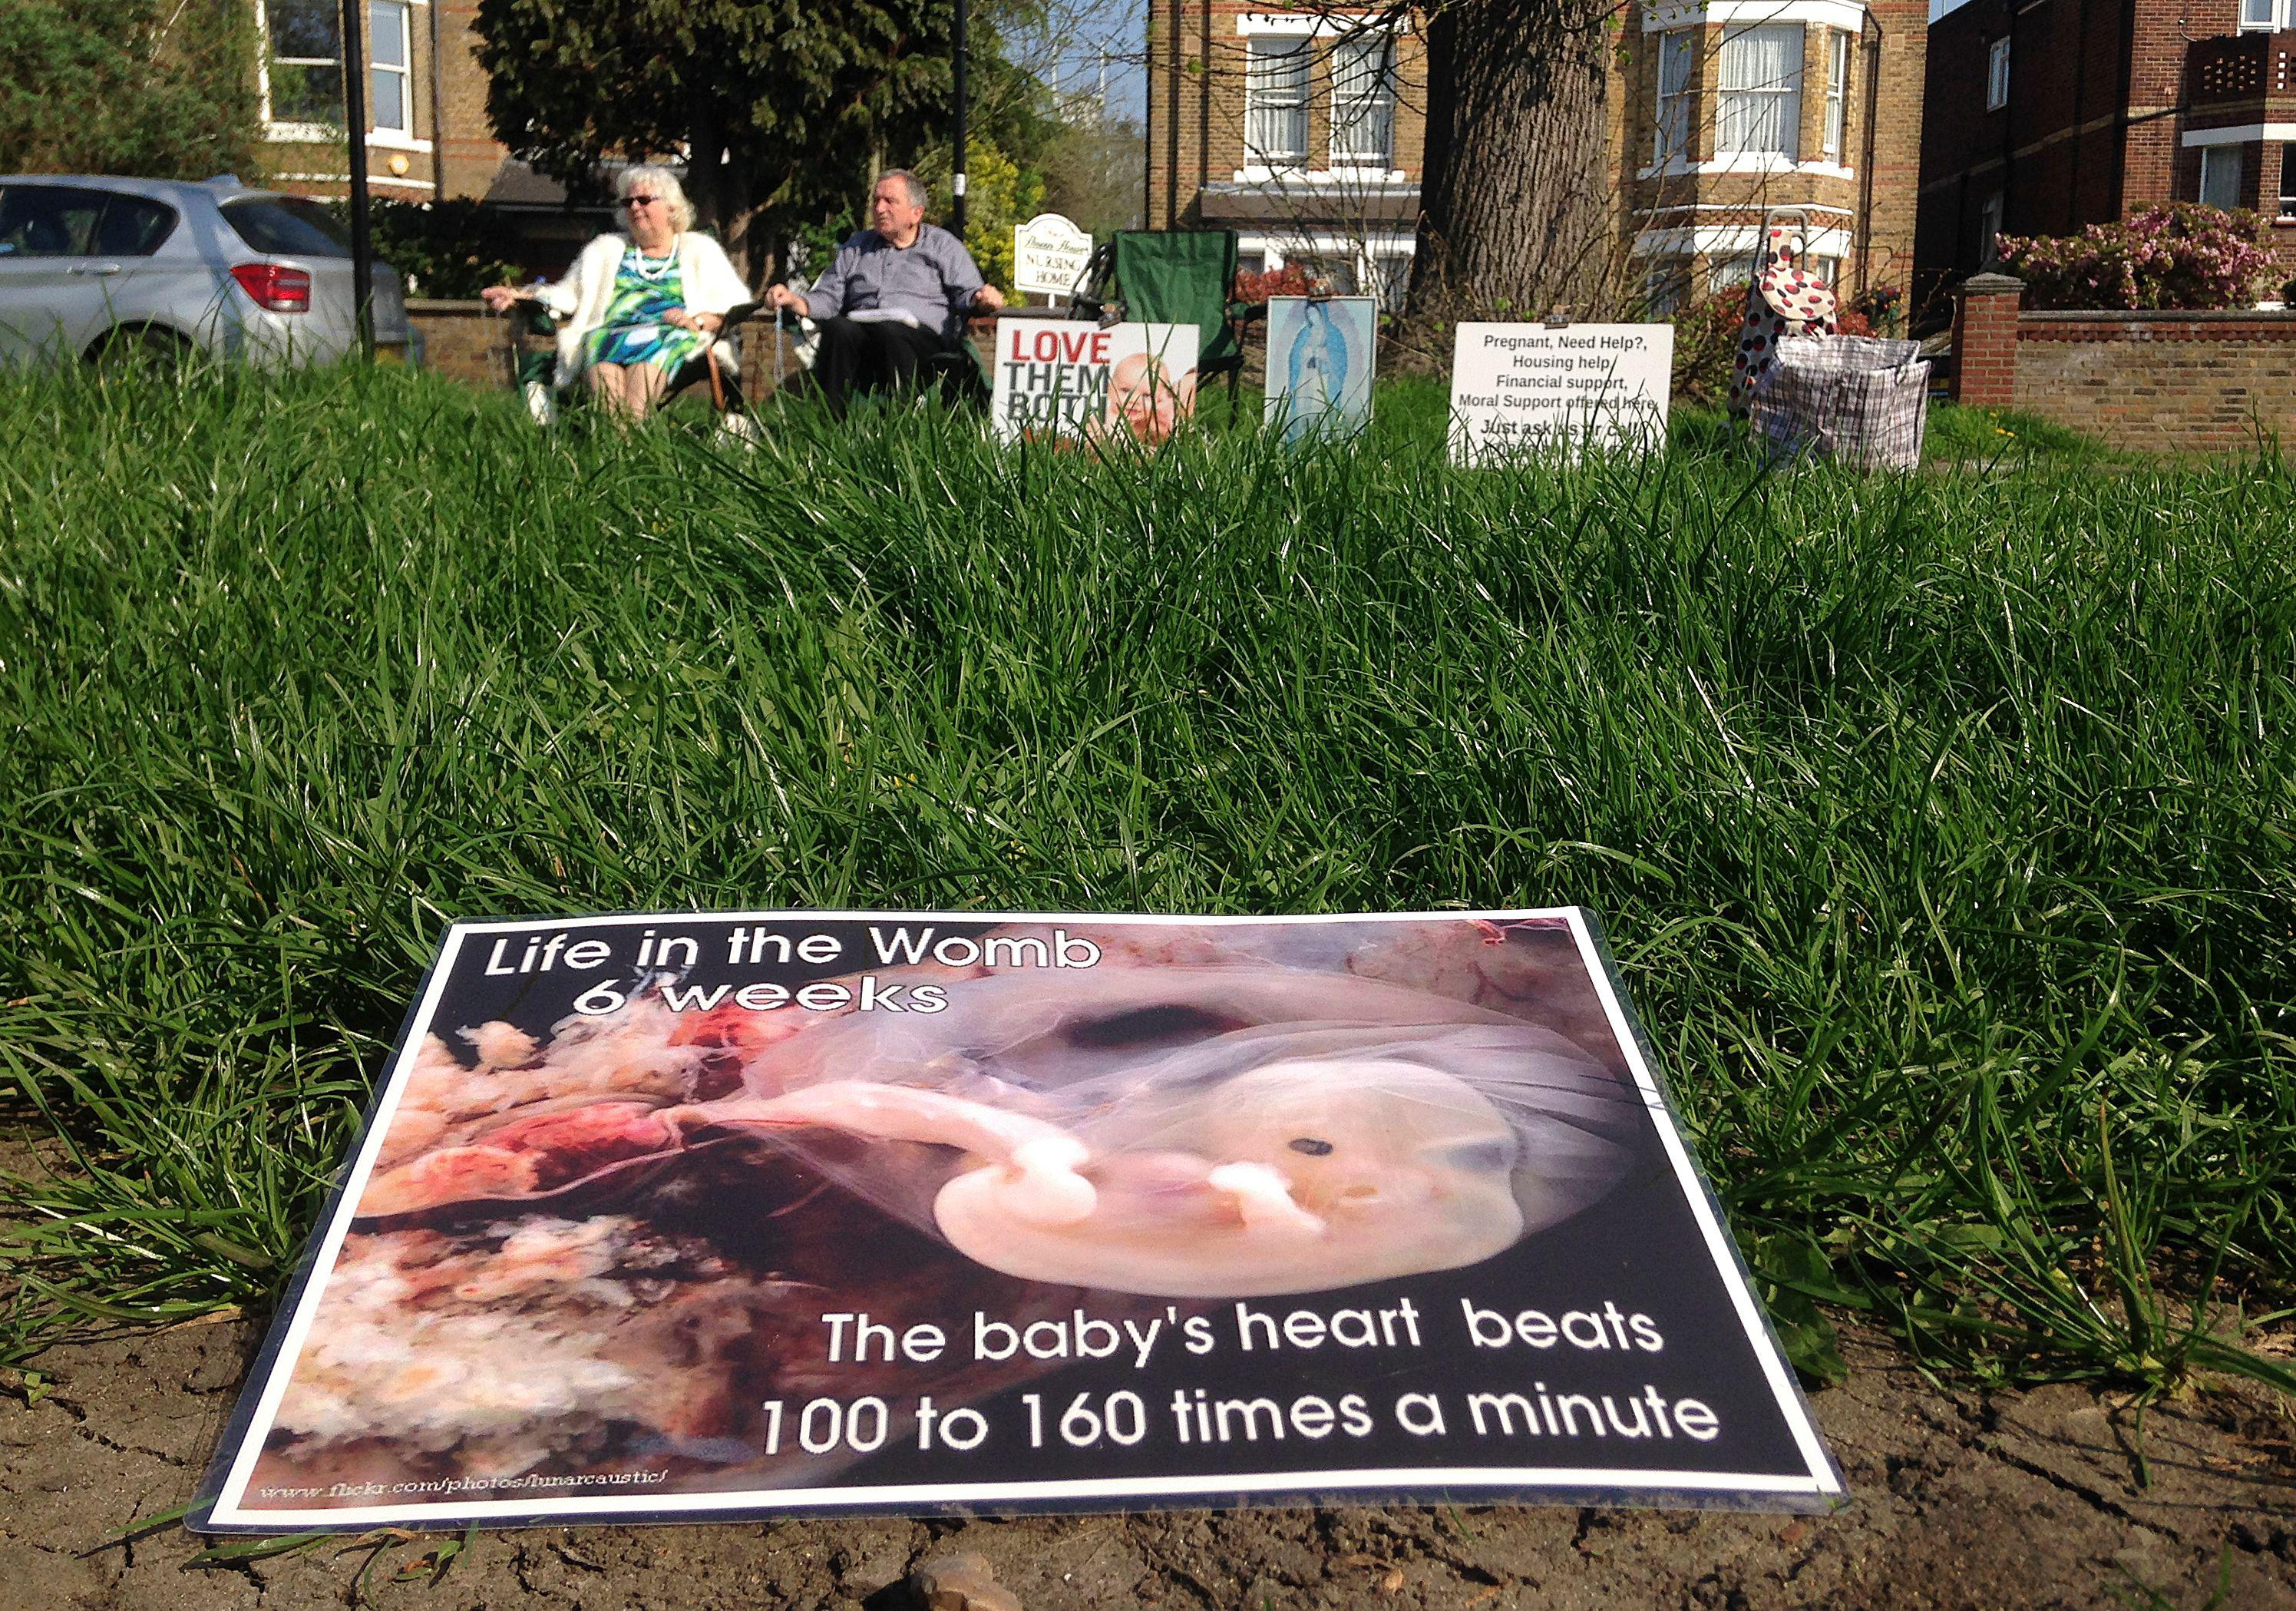 Colleen Wallace (L) and Eamonn Gill, who oppose abortion attend a pro-life vigil on the street outside the Marie Stopes clinic, that offers contraception and abortion services, in Ealing, west London, on April 21, 2018. - A ban on pro-life protests outside an abortion clinic in London came into force on Monday in a first that pro-choice campaigners hope will set a precedent for the country. (Photo by ALICE RITCHIE / AFP)        (Photo credit should read ALICE RITCHIE/AFP/Getty Images)